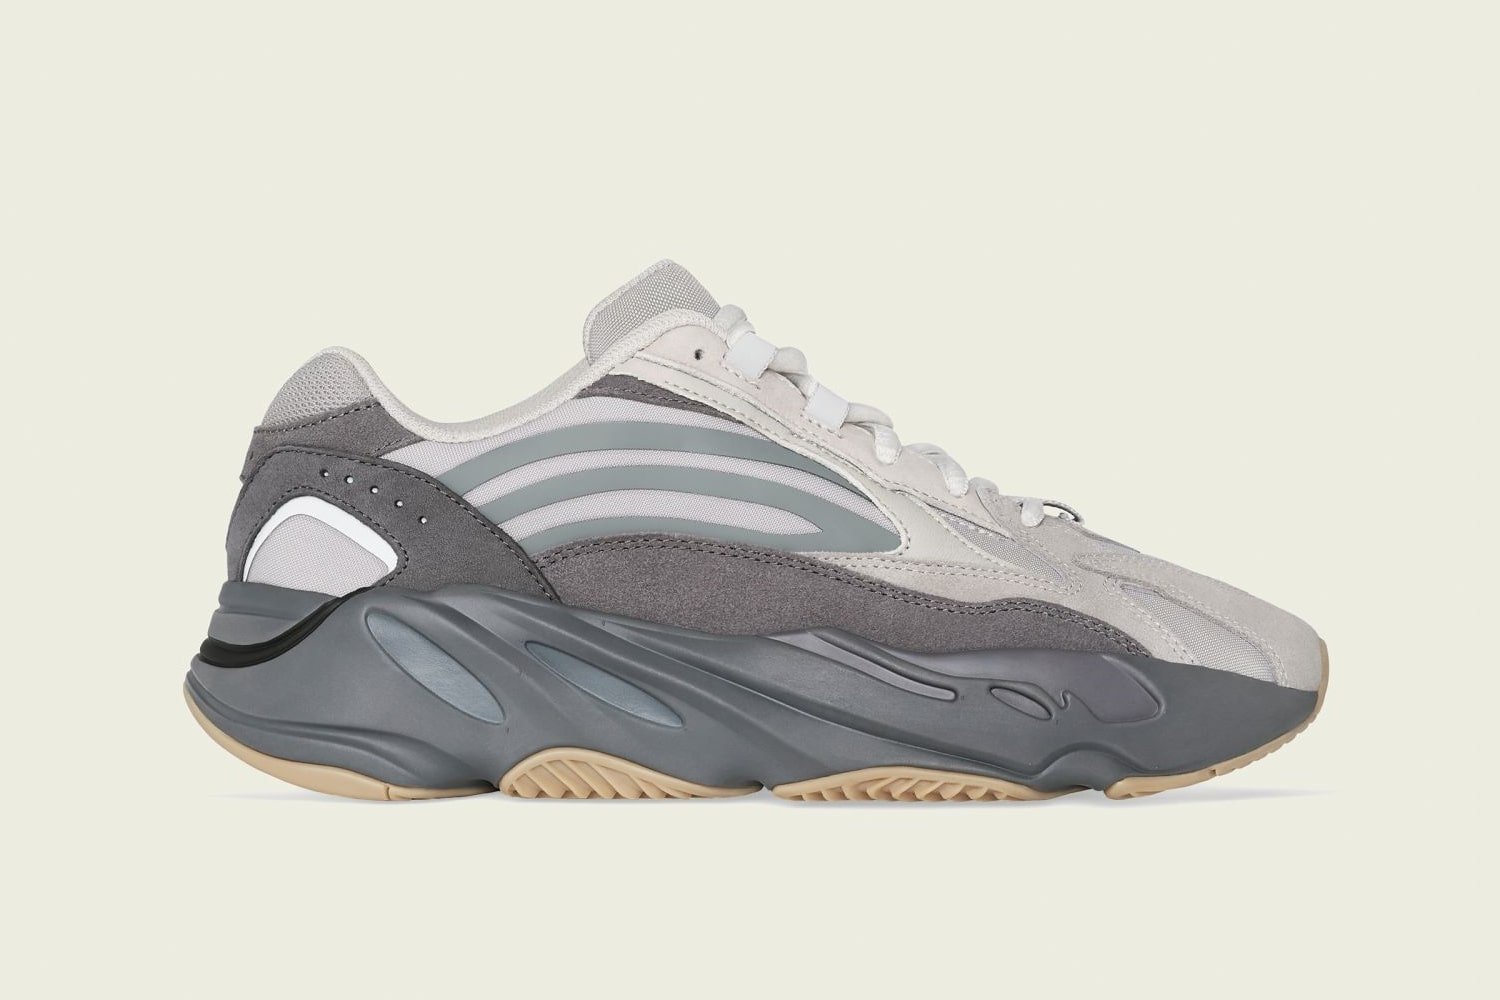 best website 368a5 36906 Every YEEZY Release Heading Your Way in 2019 - HOUSE OF HEAT ...